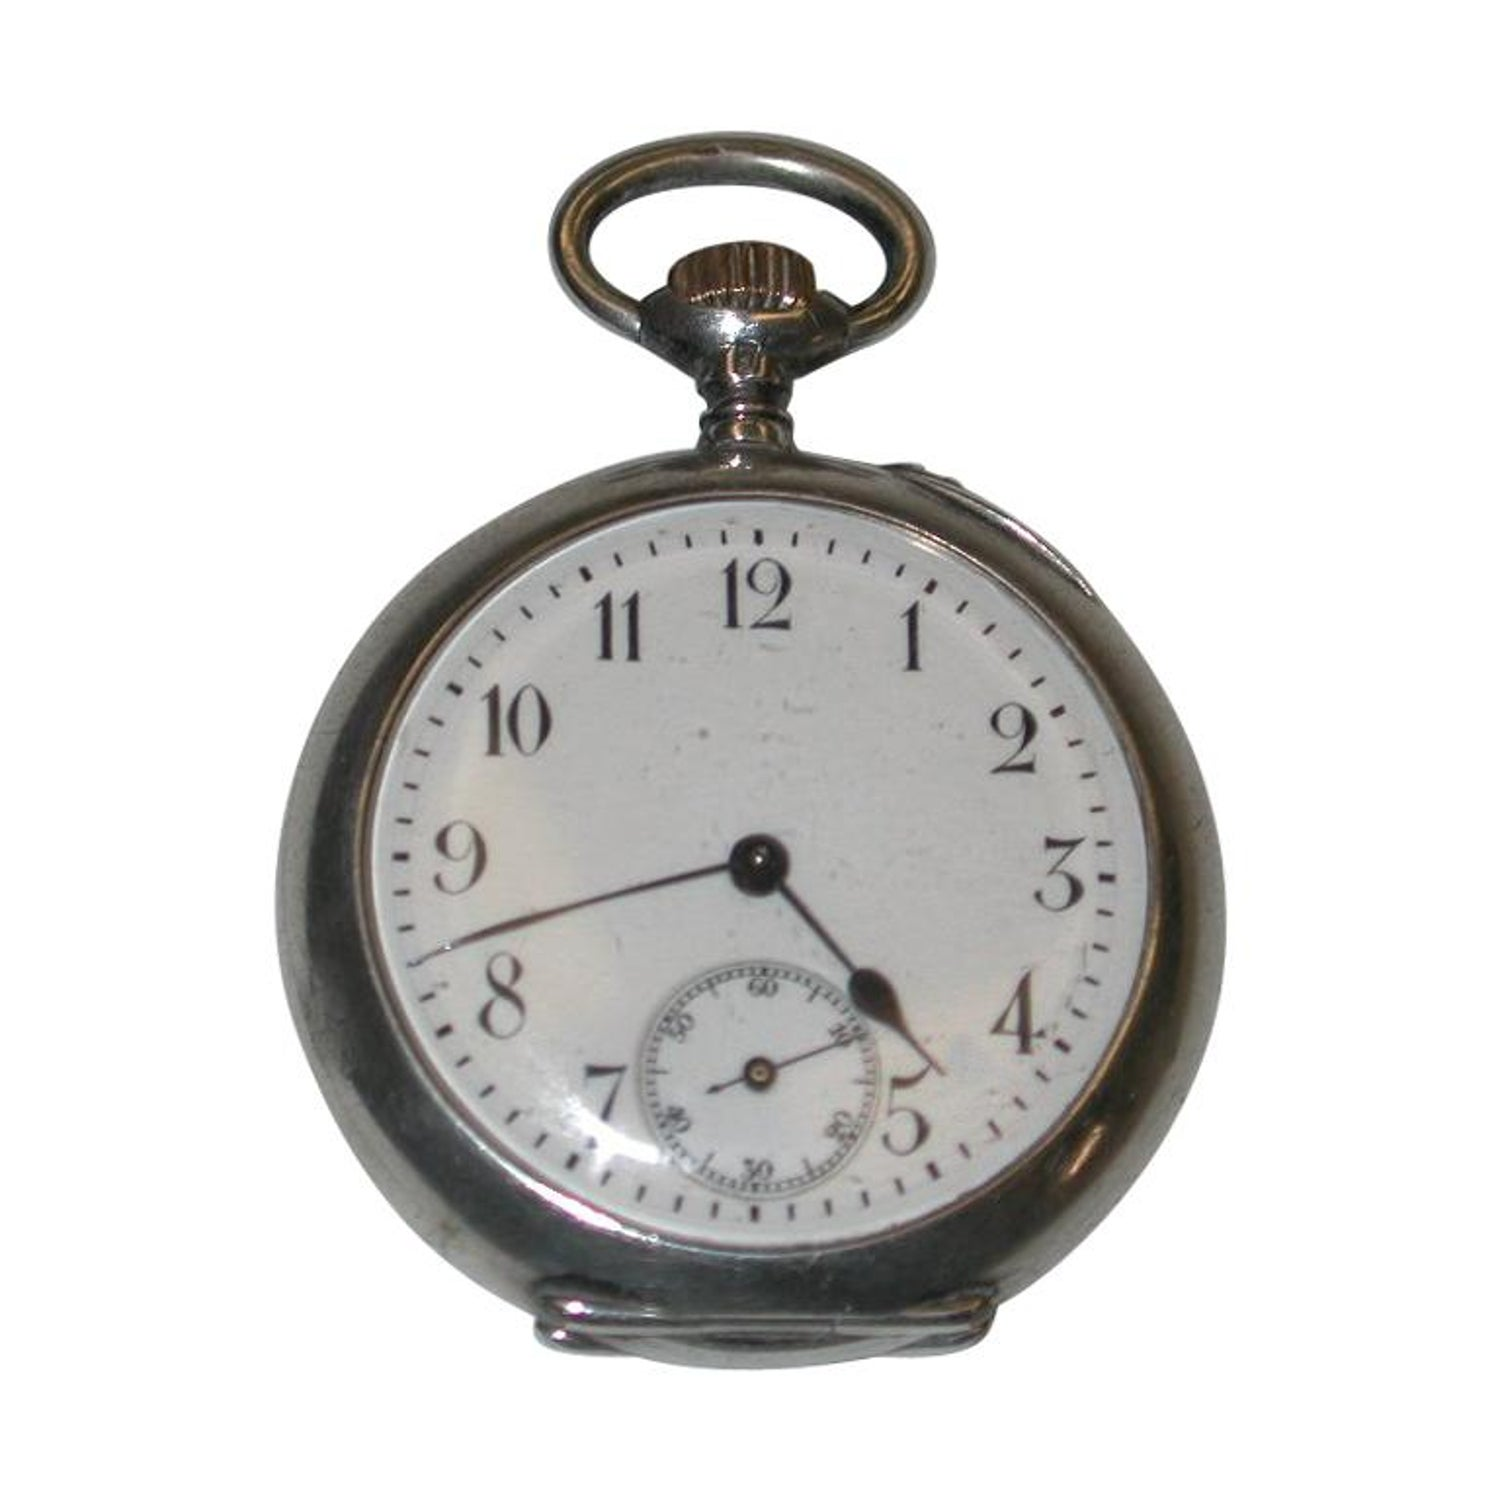 d2c045ded Antique Ladies Swiss Silver Pocket Watch, circa 1900 For Sale at 1stdibs